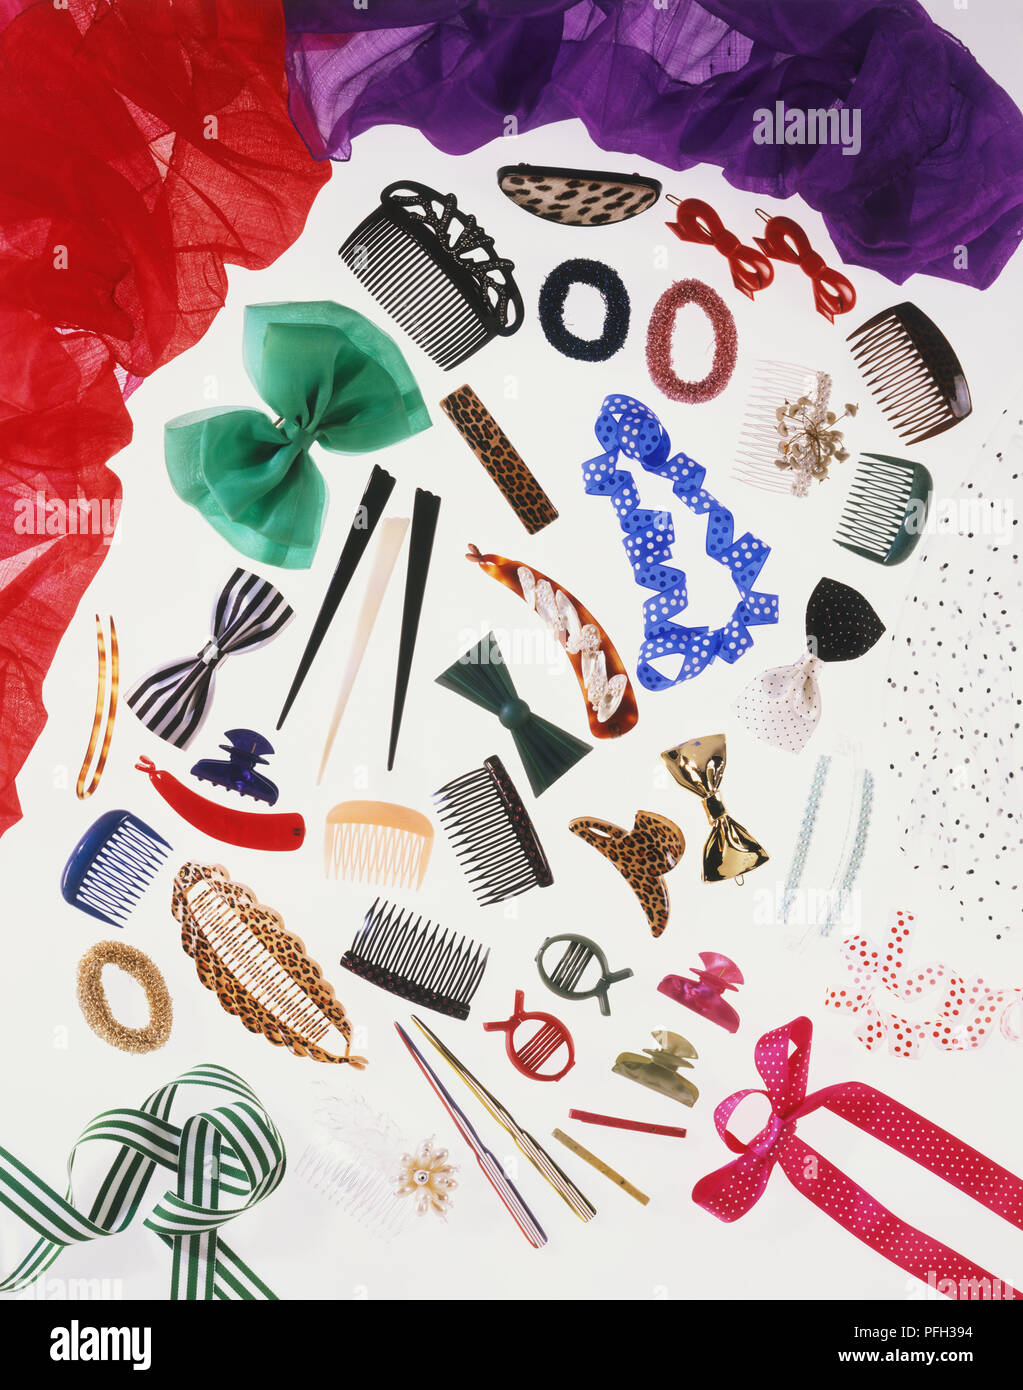 Selection of hair accessories, including clips, grips, pins, sticks, combs and ribbons - Stock Image